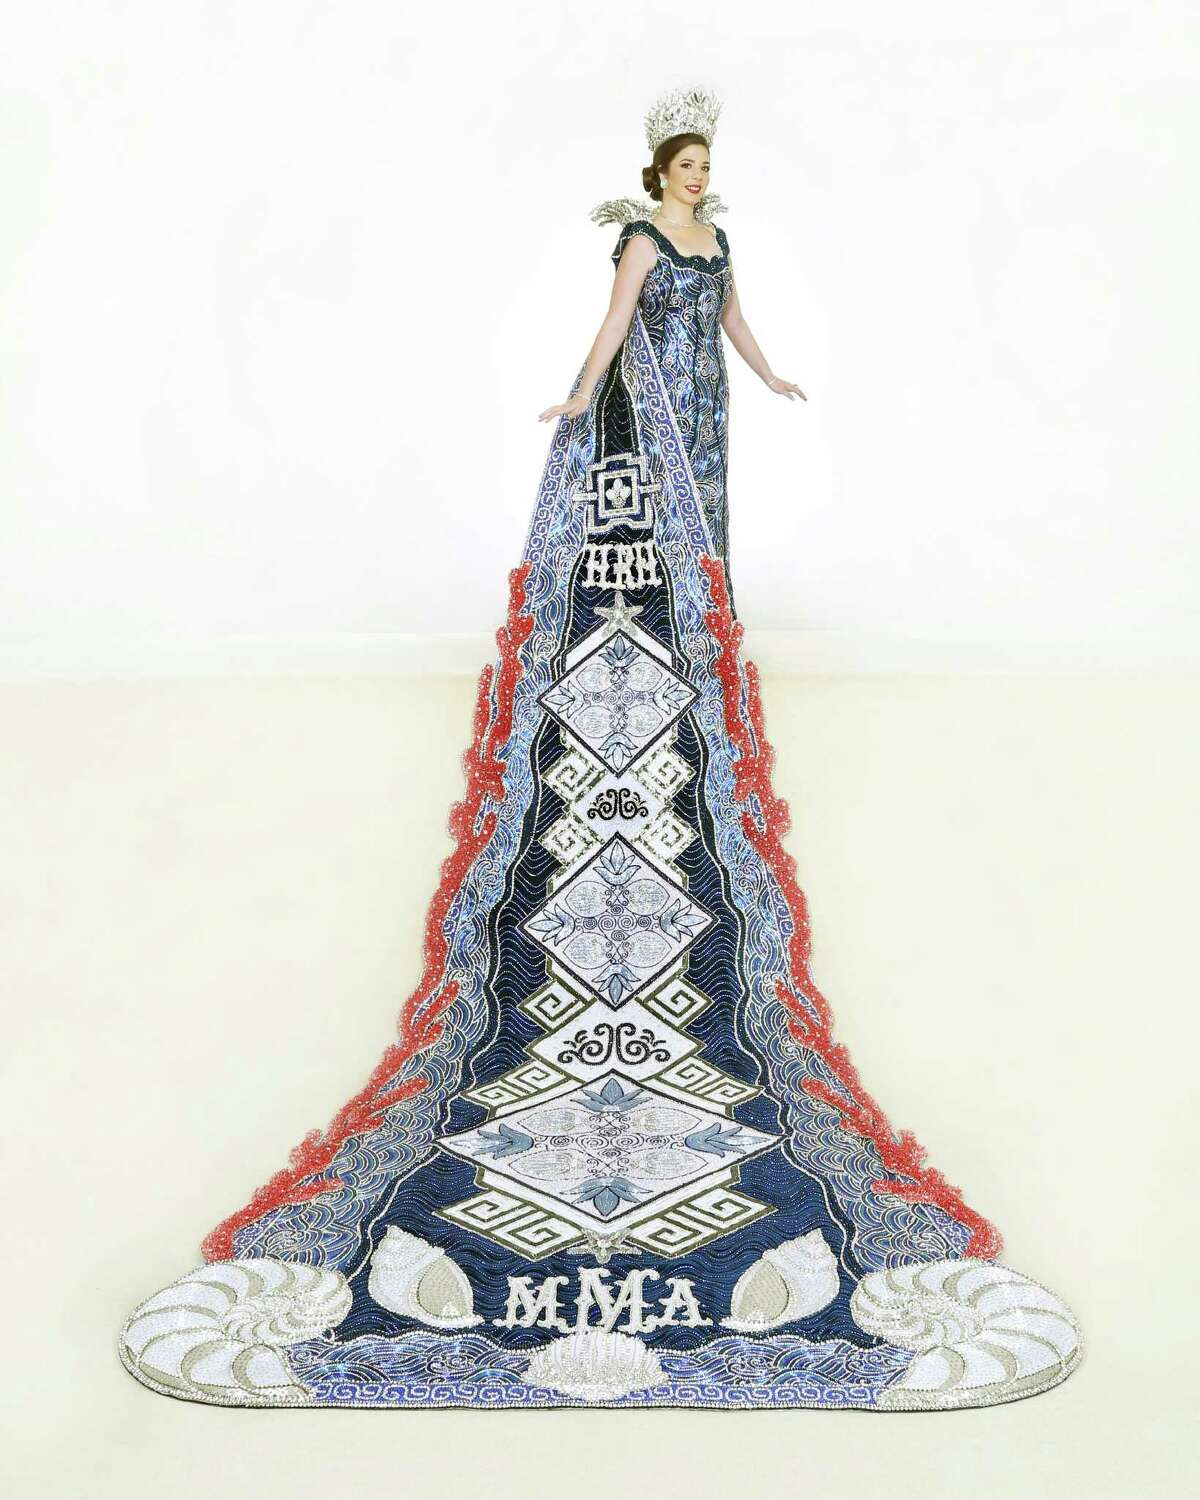 Morgan Anne McClelland, Princess of Hellenic Grandeur. Representing the Mediterranean Sea surrounding Greece, the navy blue train has a border of thick coral Swarovski crystals and features a beaded Etruscan design in white and crystal sequins with blue bugle beading. The bottom of the train has padded 3D nautilus shells. Her gown is fully beaded in a mix of blue bugle beads and chai chain to evoke the sea's ripple surrounding the Greek isles. Her crown and collar depict sea coral, enhanced with silver hues, blue Swarovski crystals and Aurora Borealis stones. She is the daughter of Mr. and Dr. Albert McClelland.